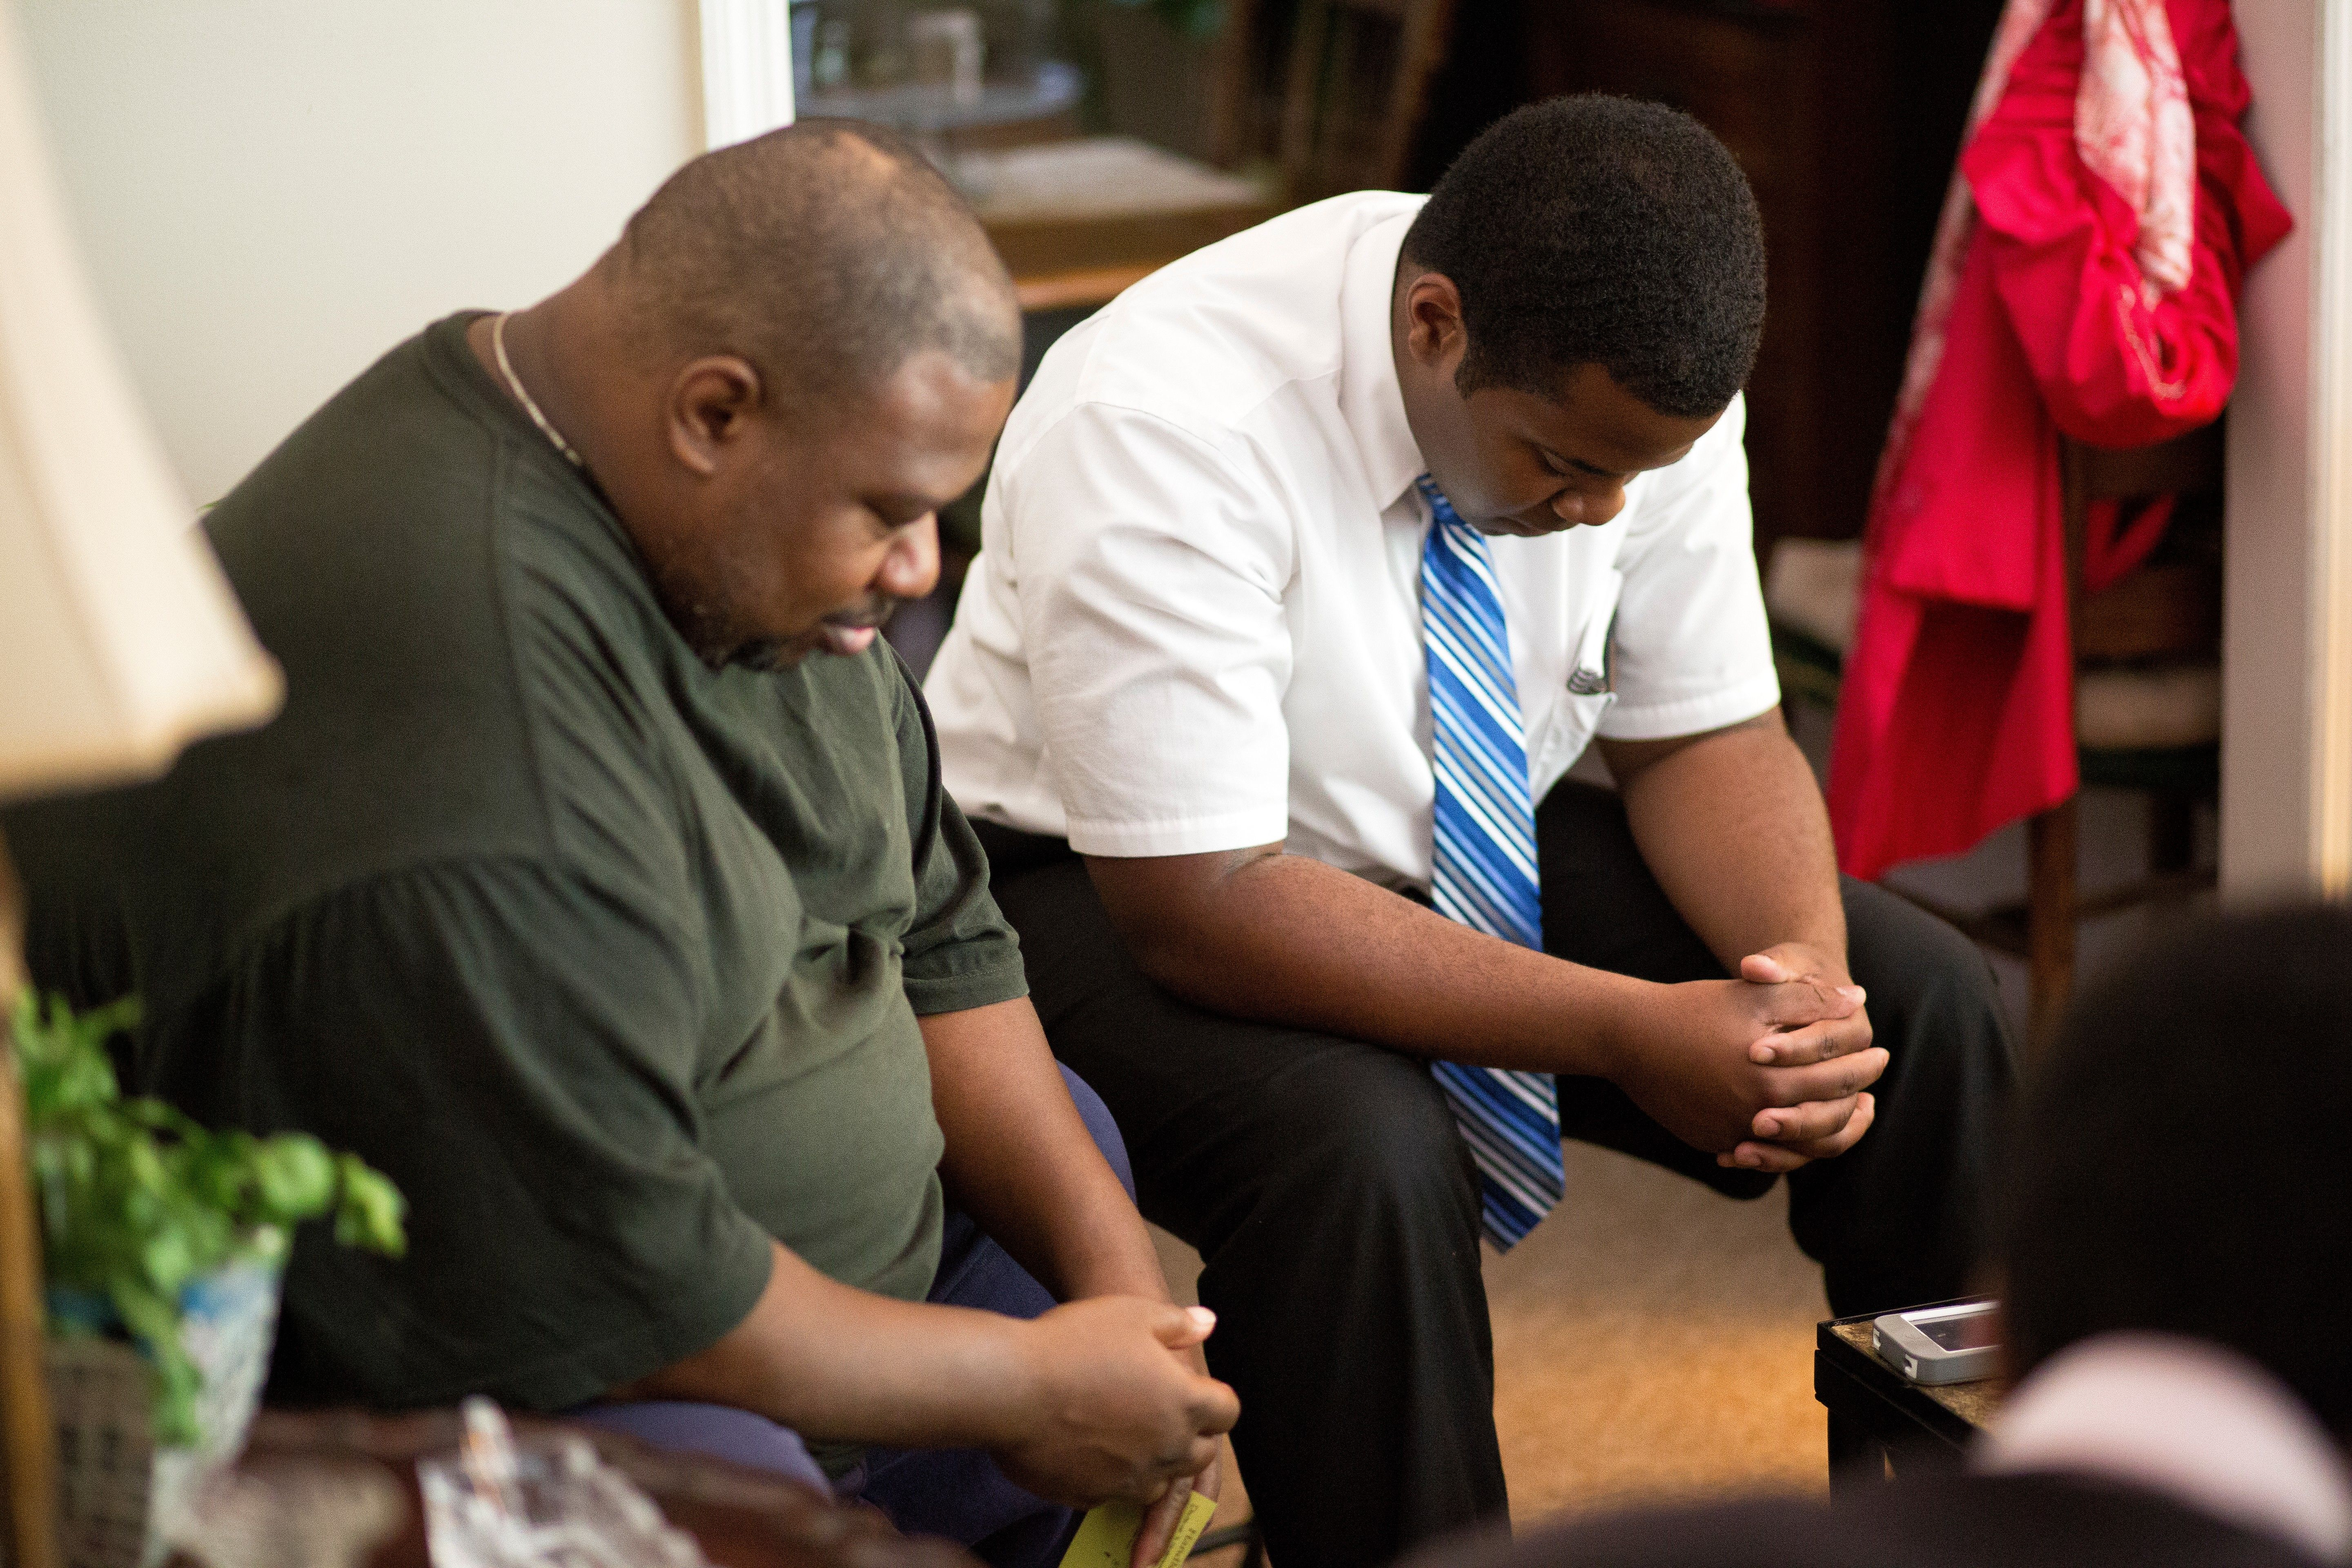 Missionaries sit and pray with a man they are teaching.